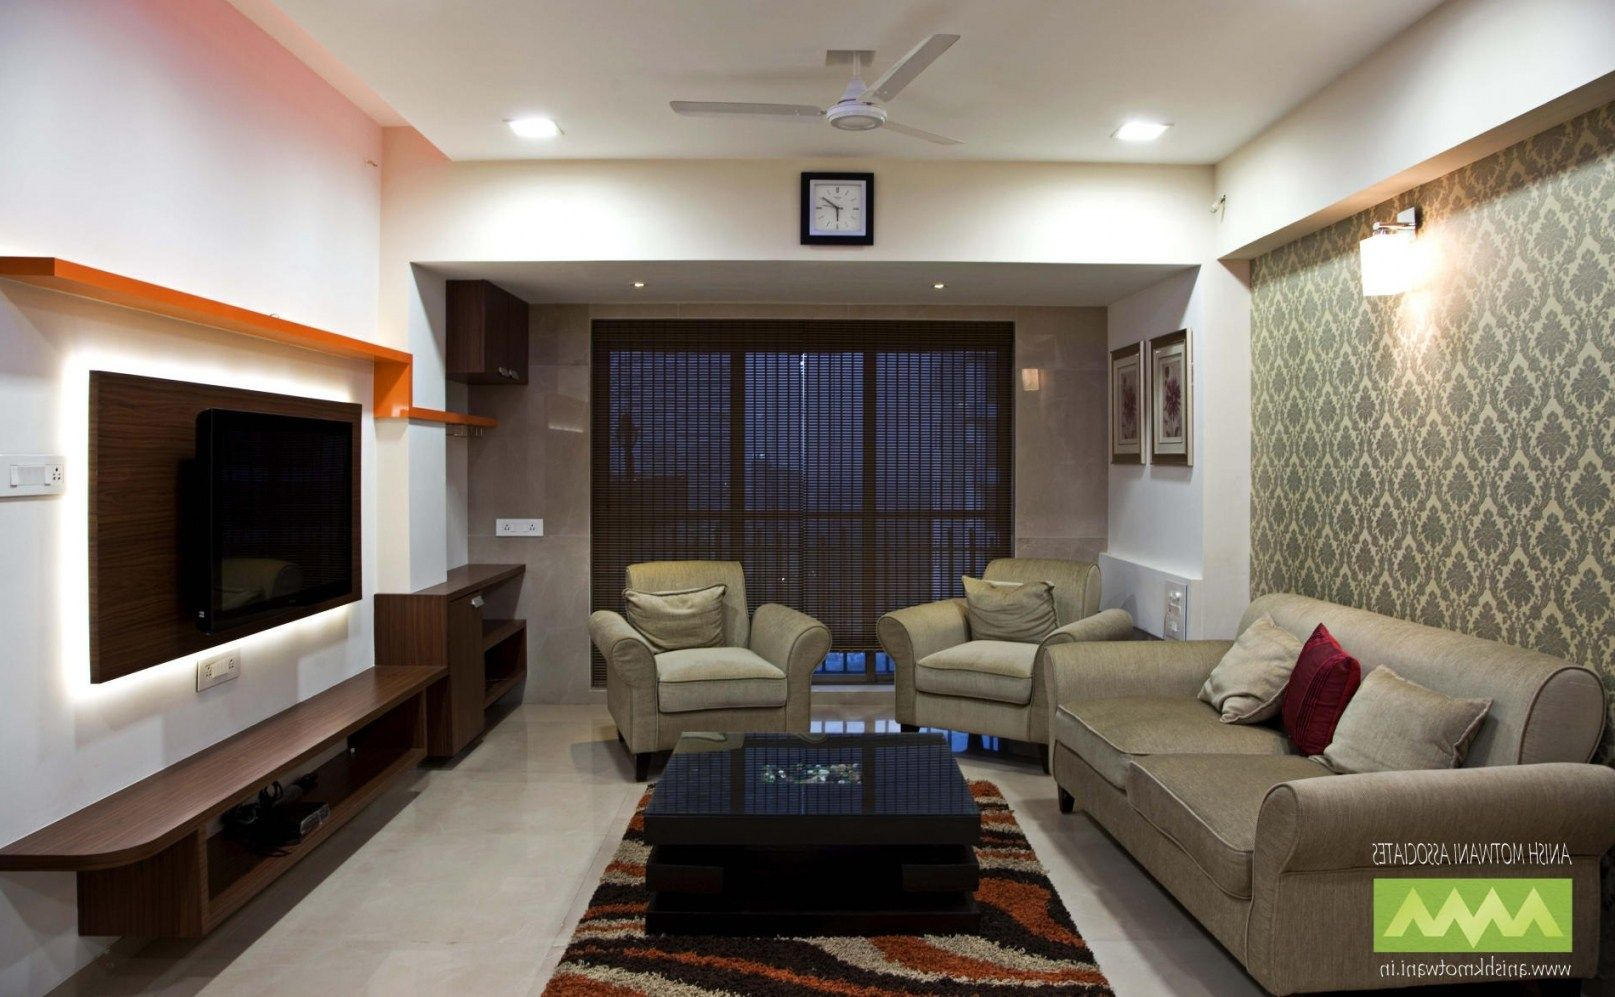 Top 10 Interior Design For Small Living Room Indian Style Top 10 Extraordinary Simple Interior Design Ideas For Small Living Room Design Decoration